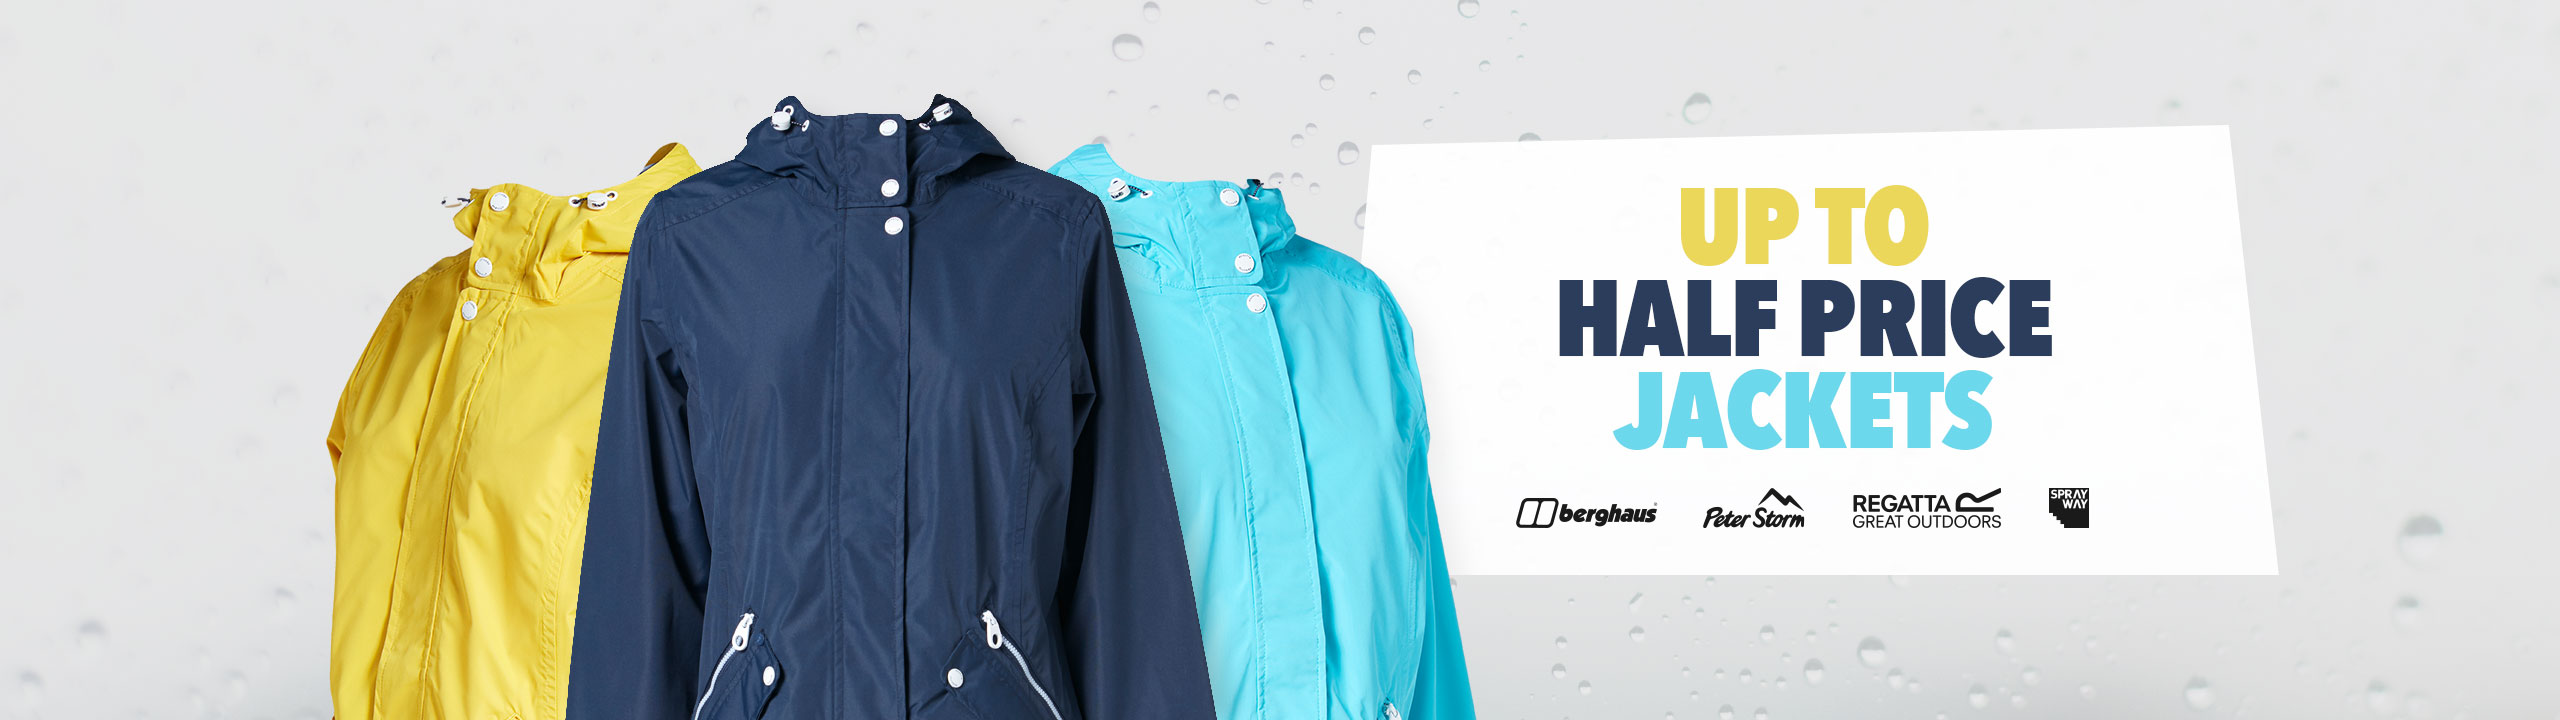 Sun & Showers - Up To Half Price Jackets